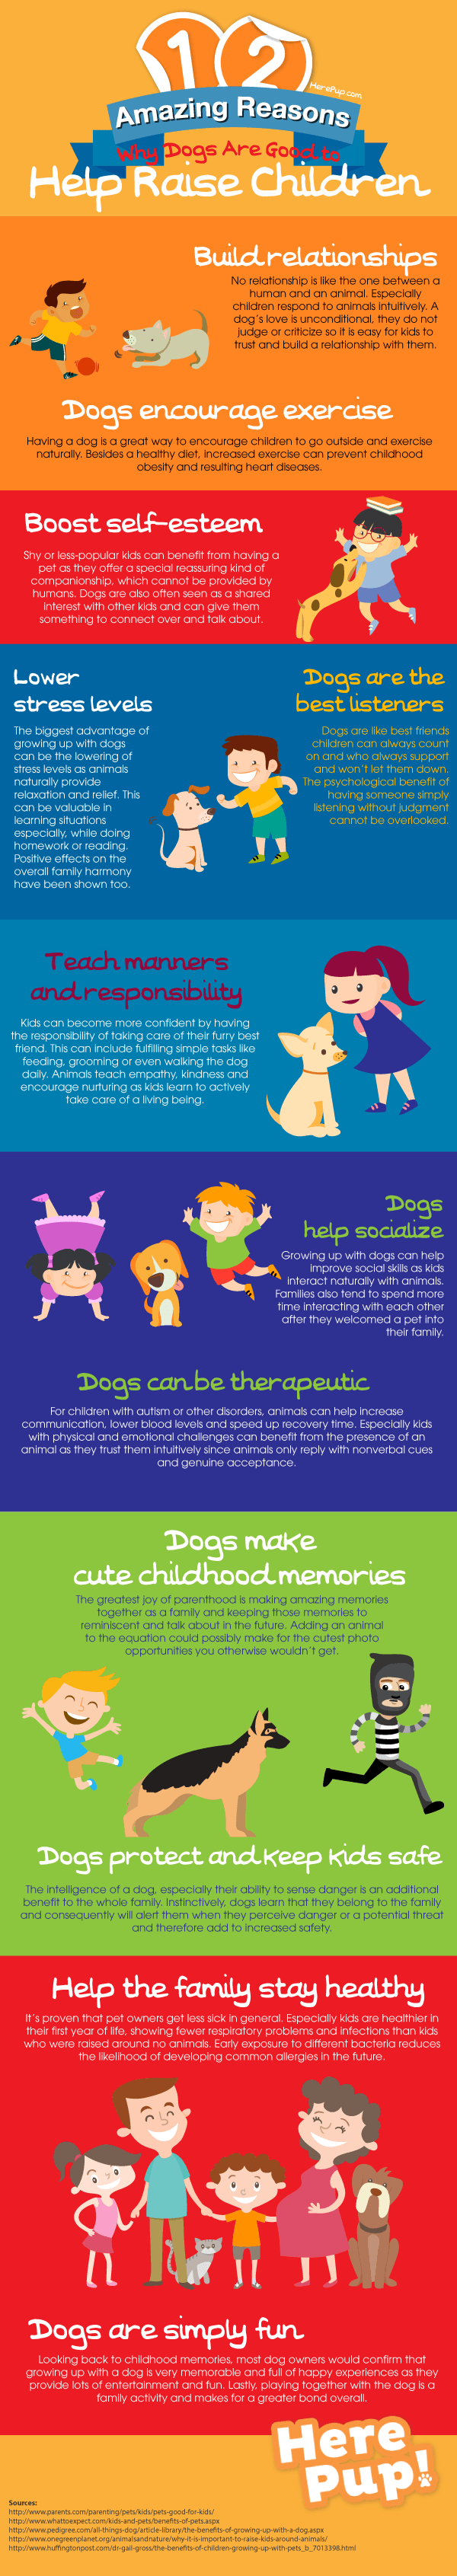 rp_reasons-dogs-help-raise-children-1.png